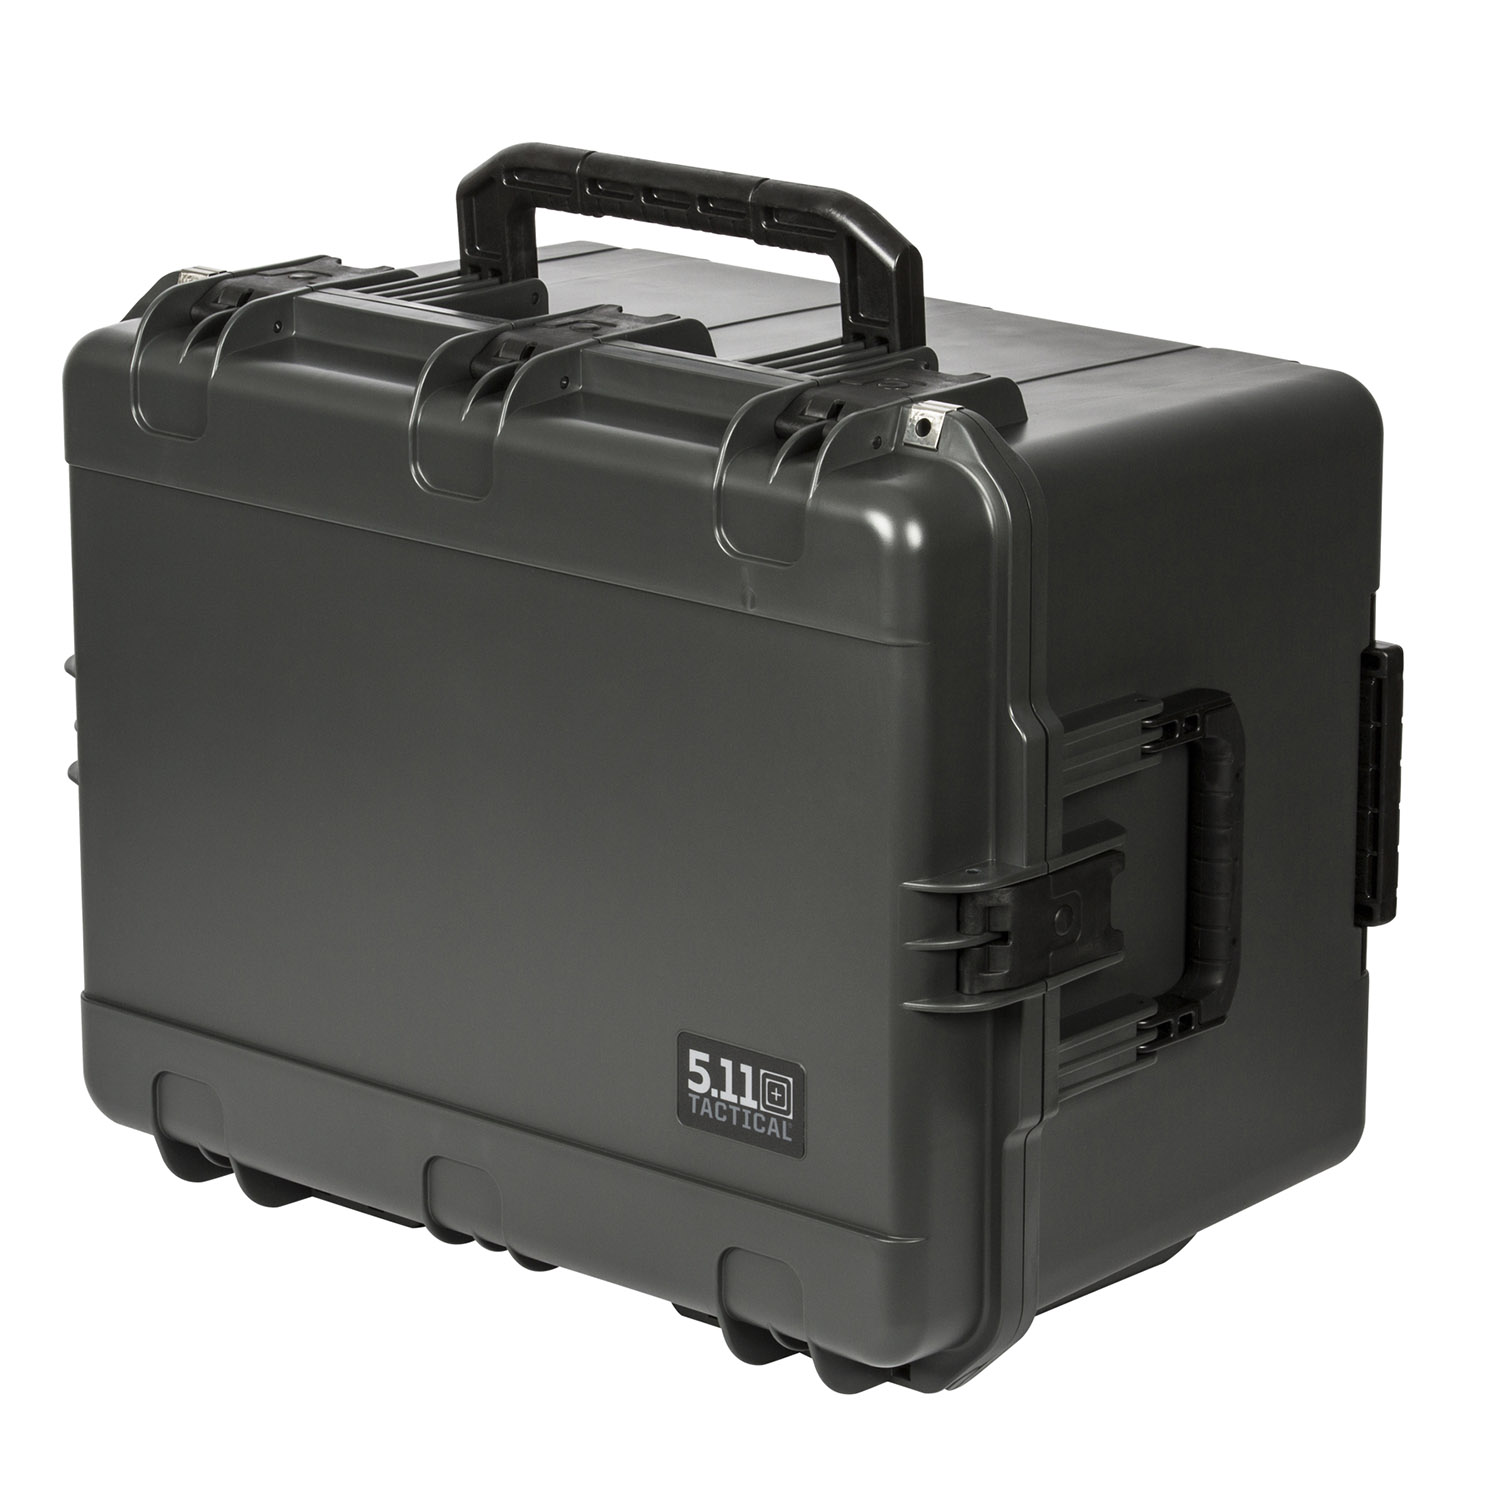 5.11 Tactical Hard Case 5480